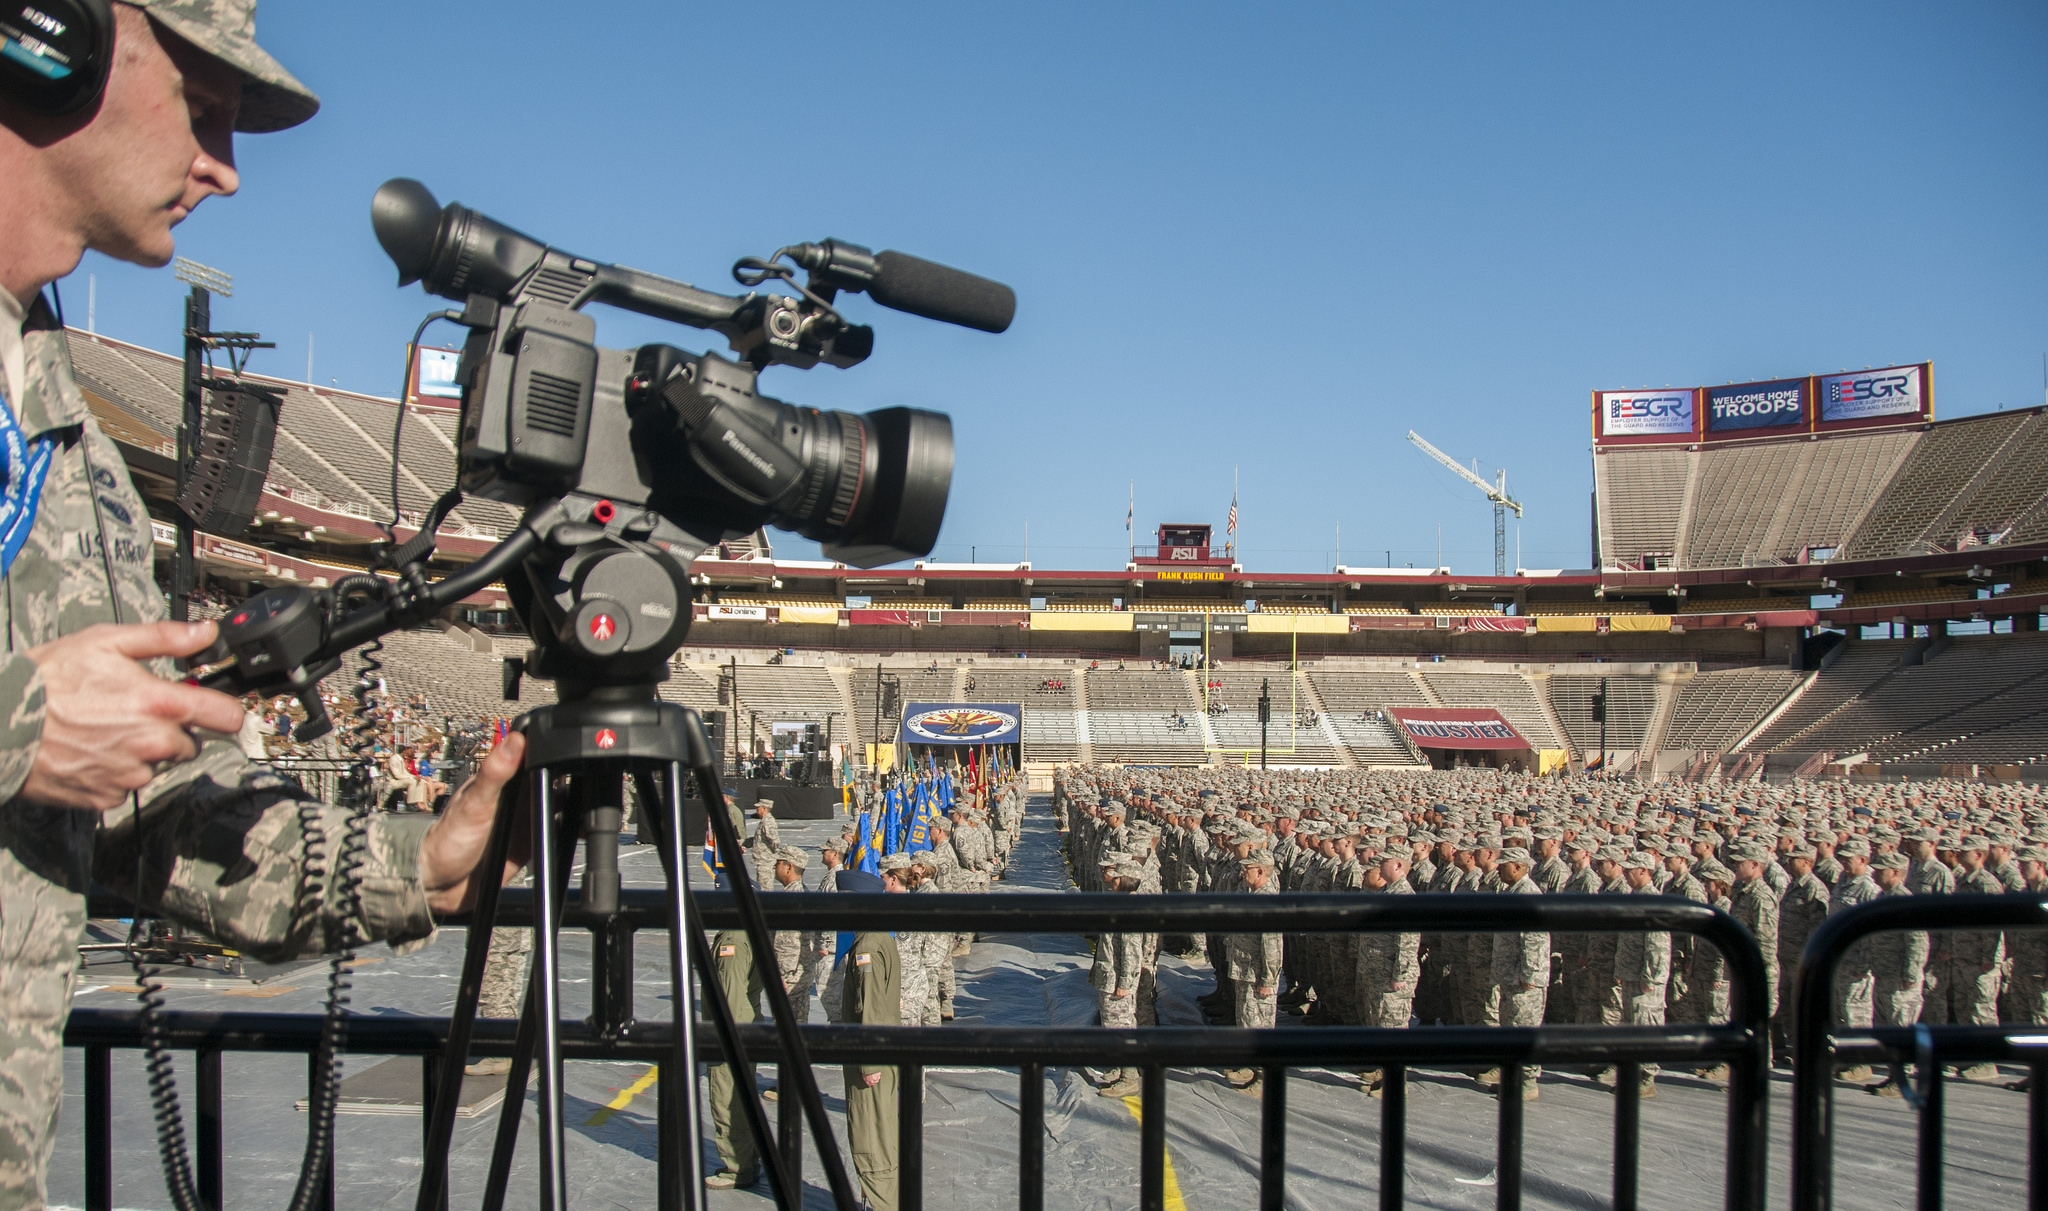 Public Affiairs videographer takes video at 2014 Muster